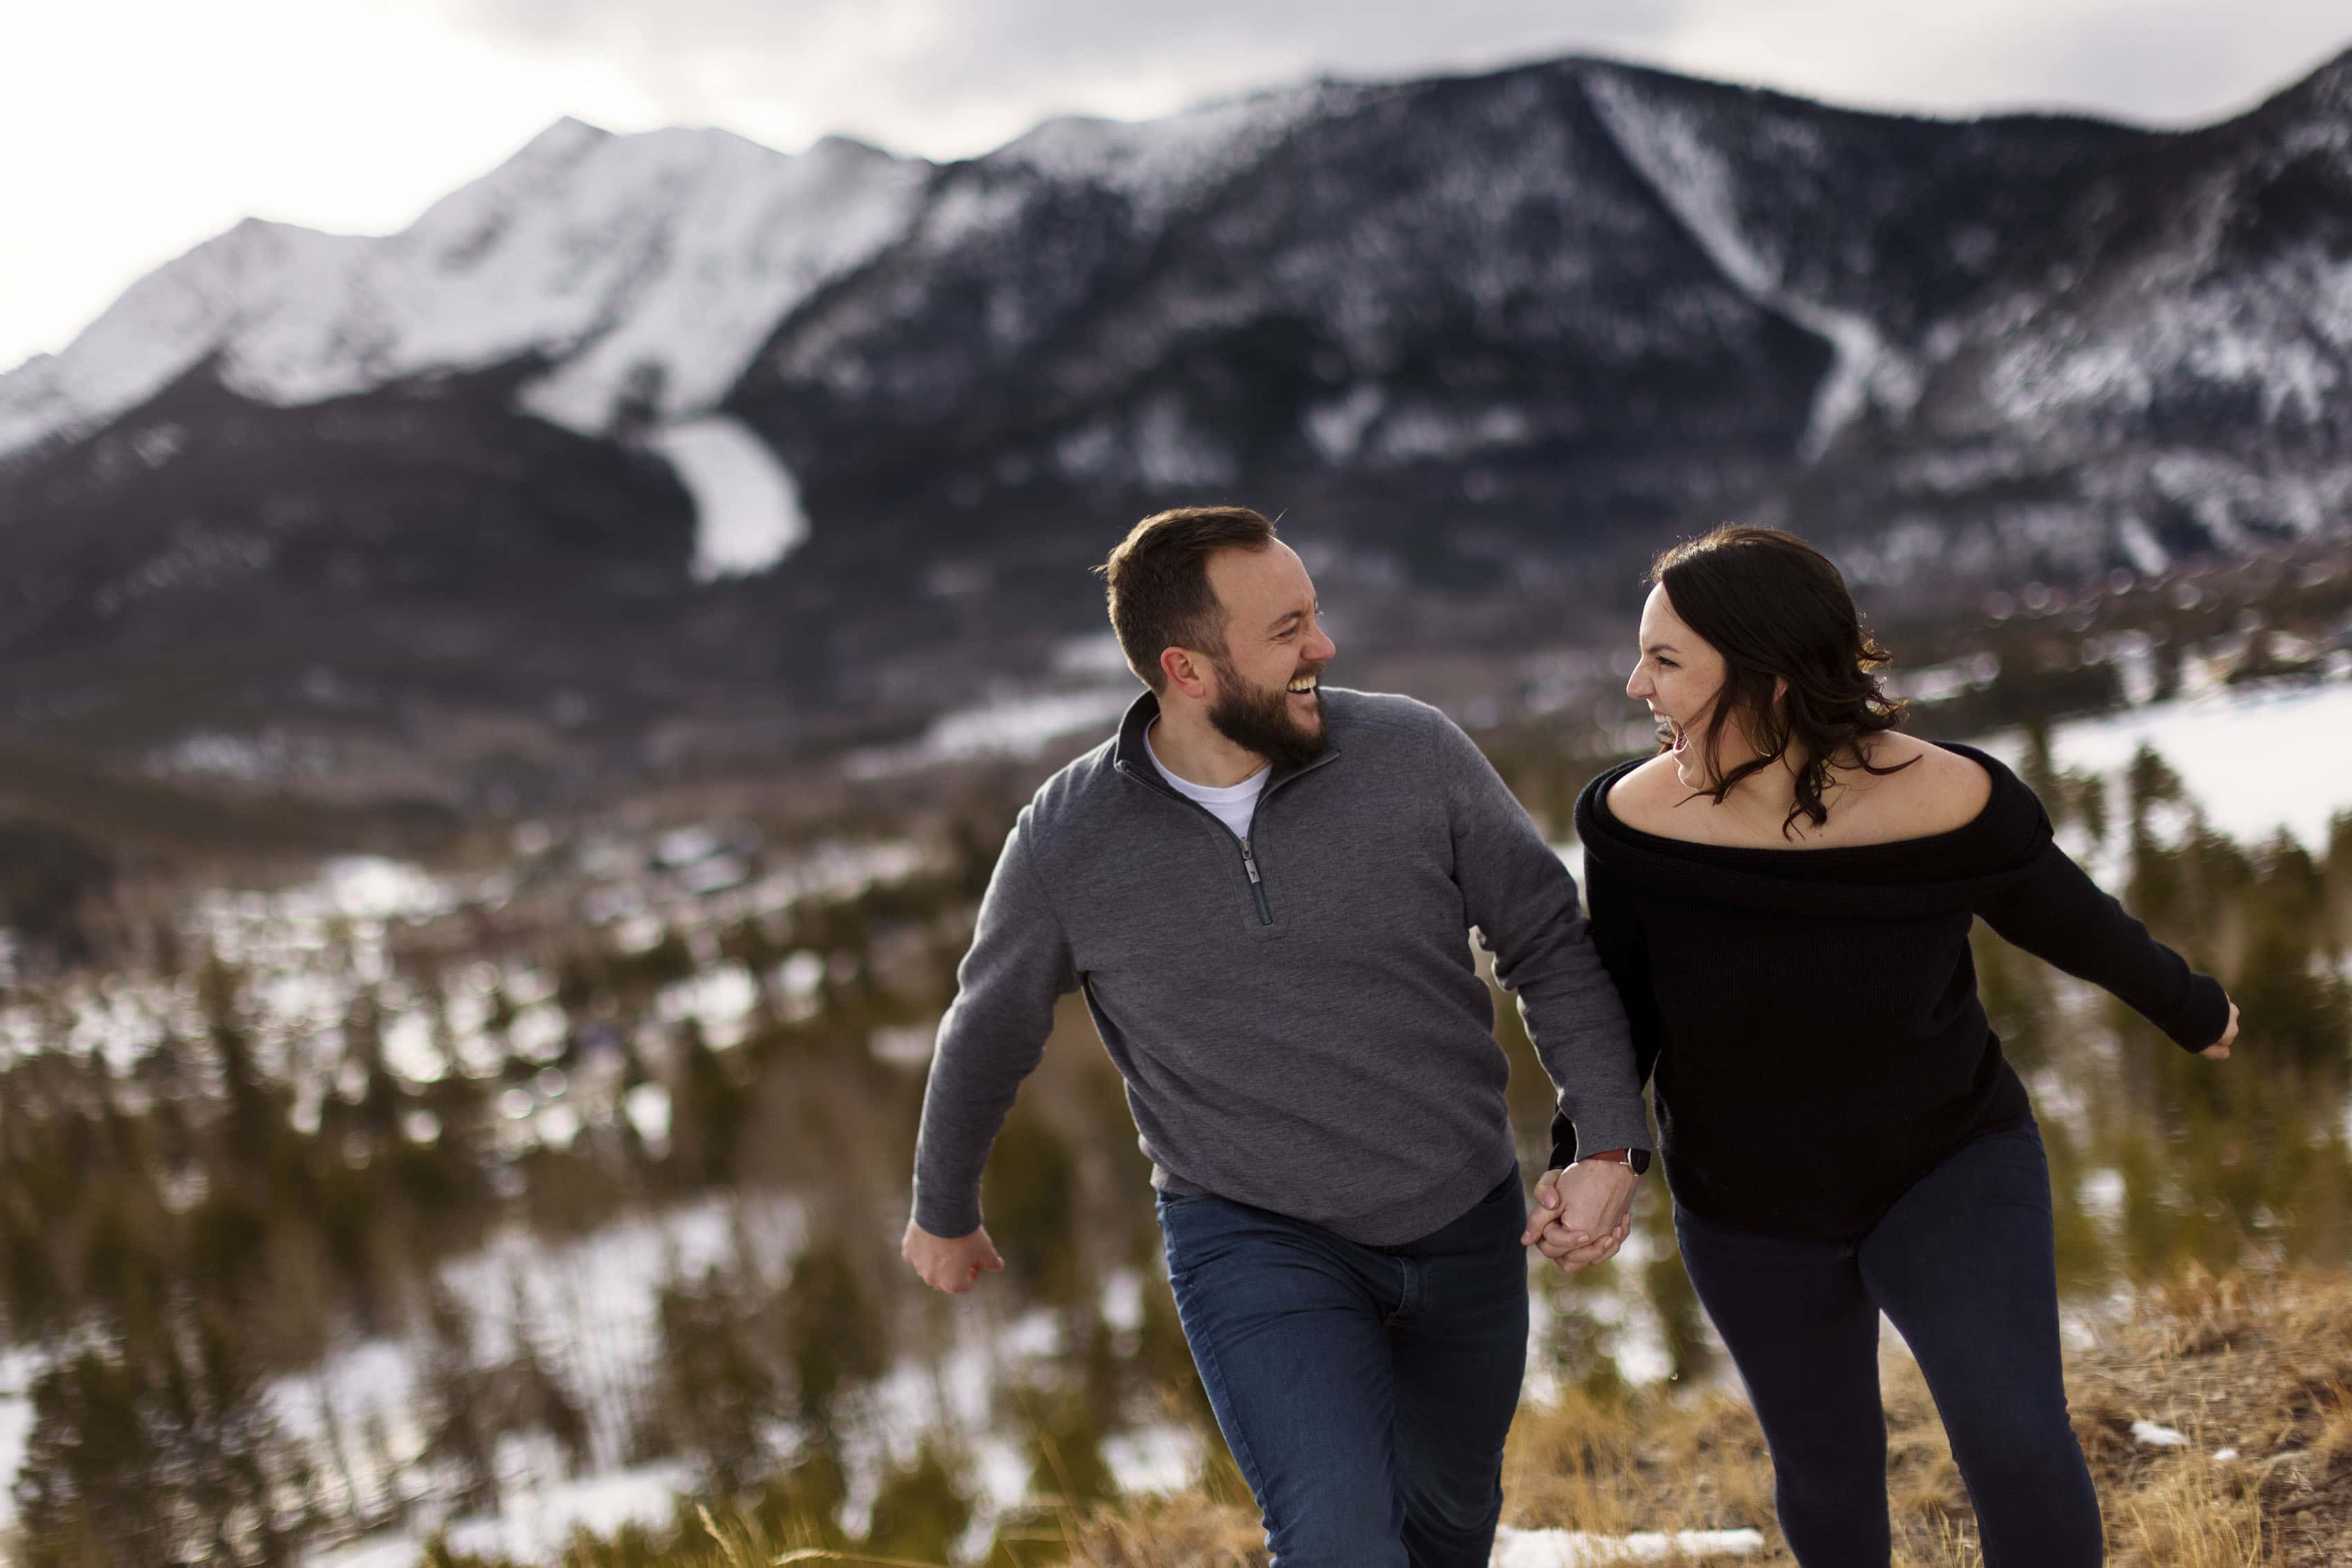 Bethany and Nick laugh together during their engagement photos in Frisco, Colorado